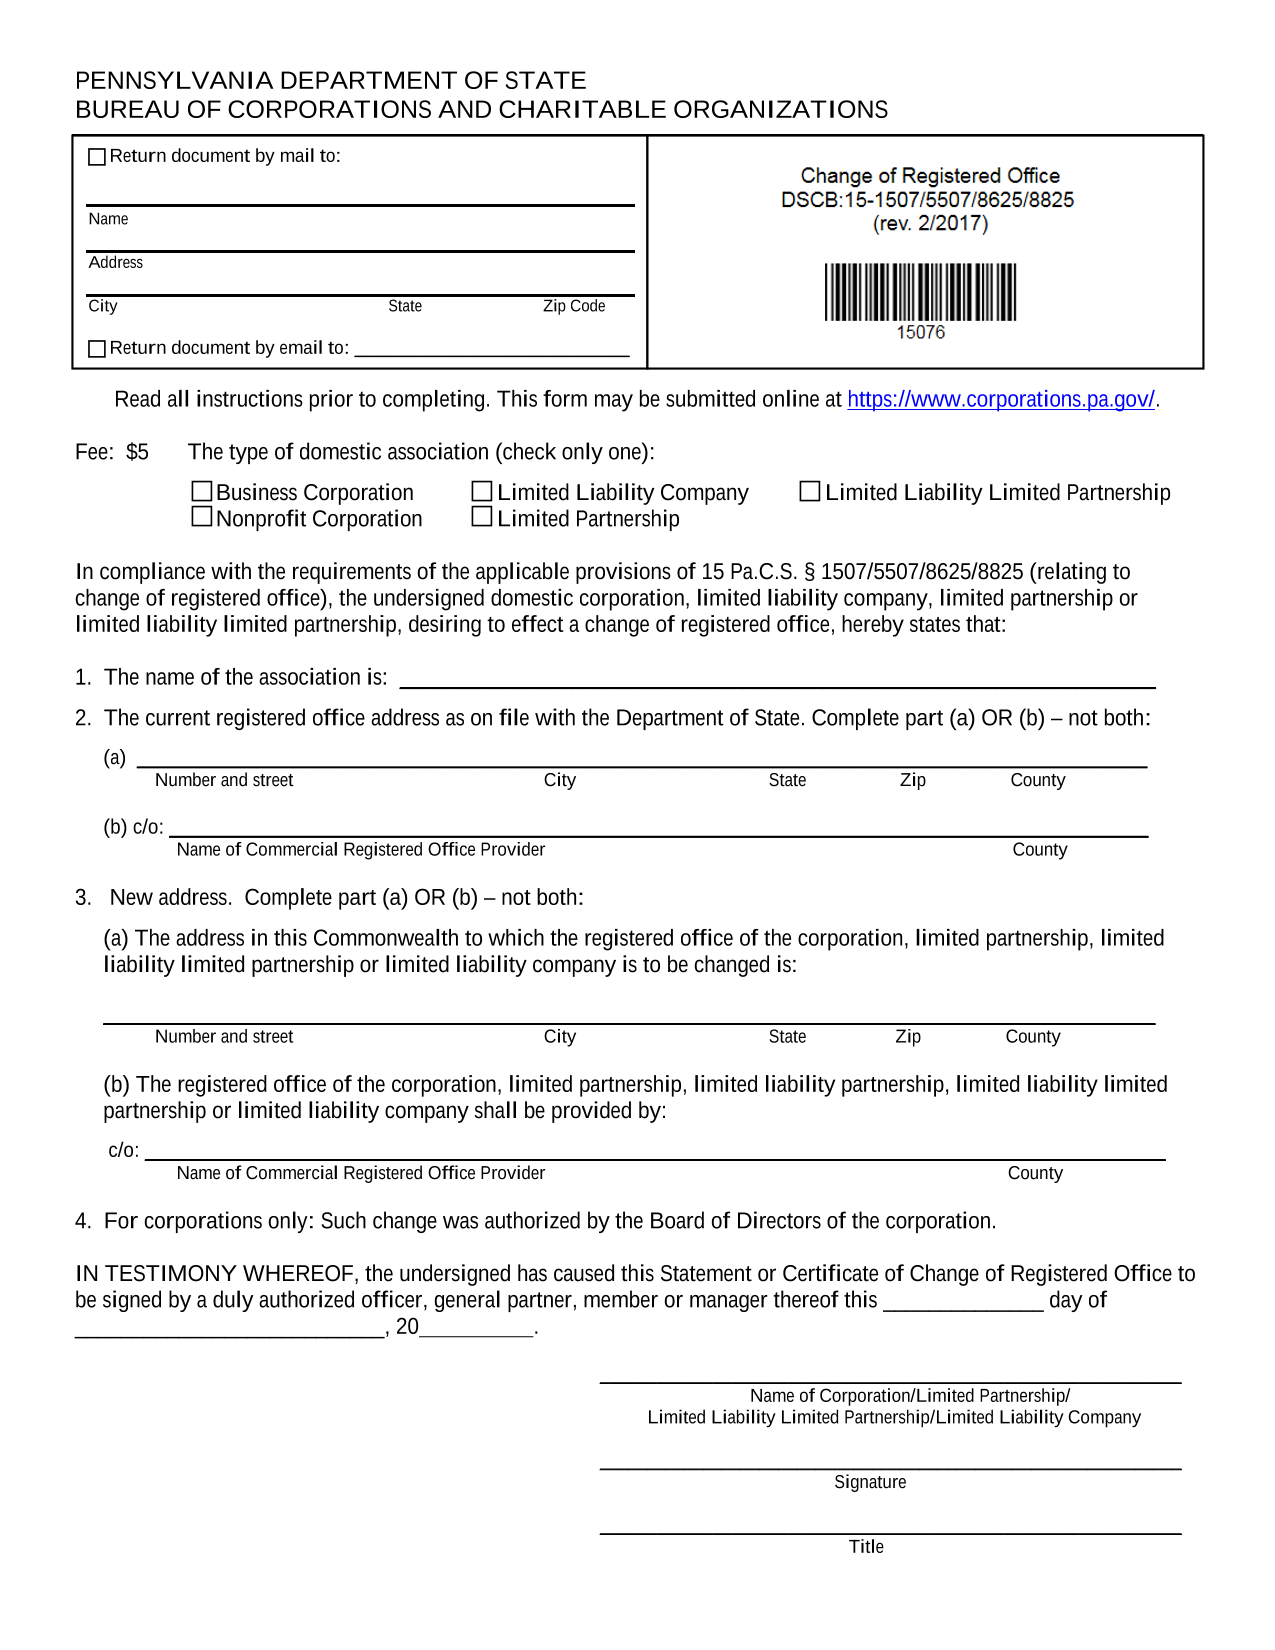 pennsylvania-statement-of-change-of-registered-office